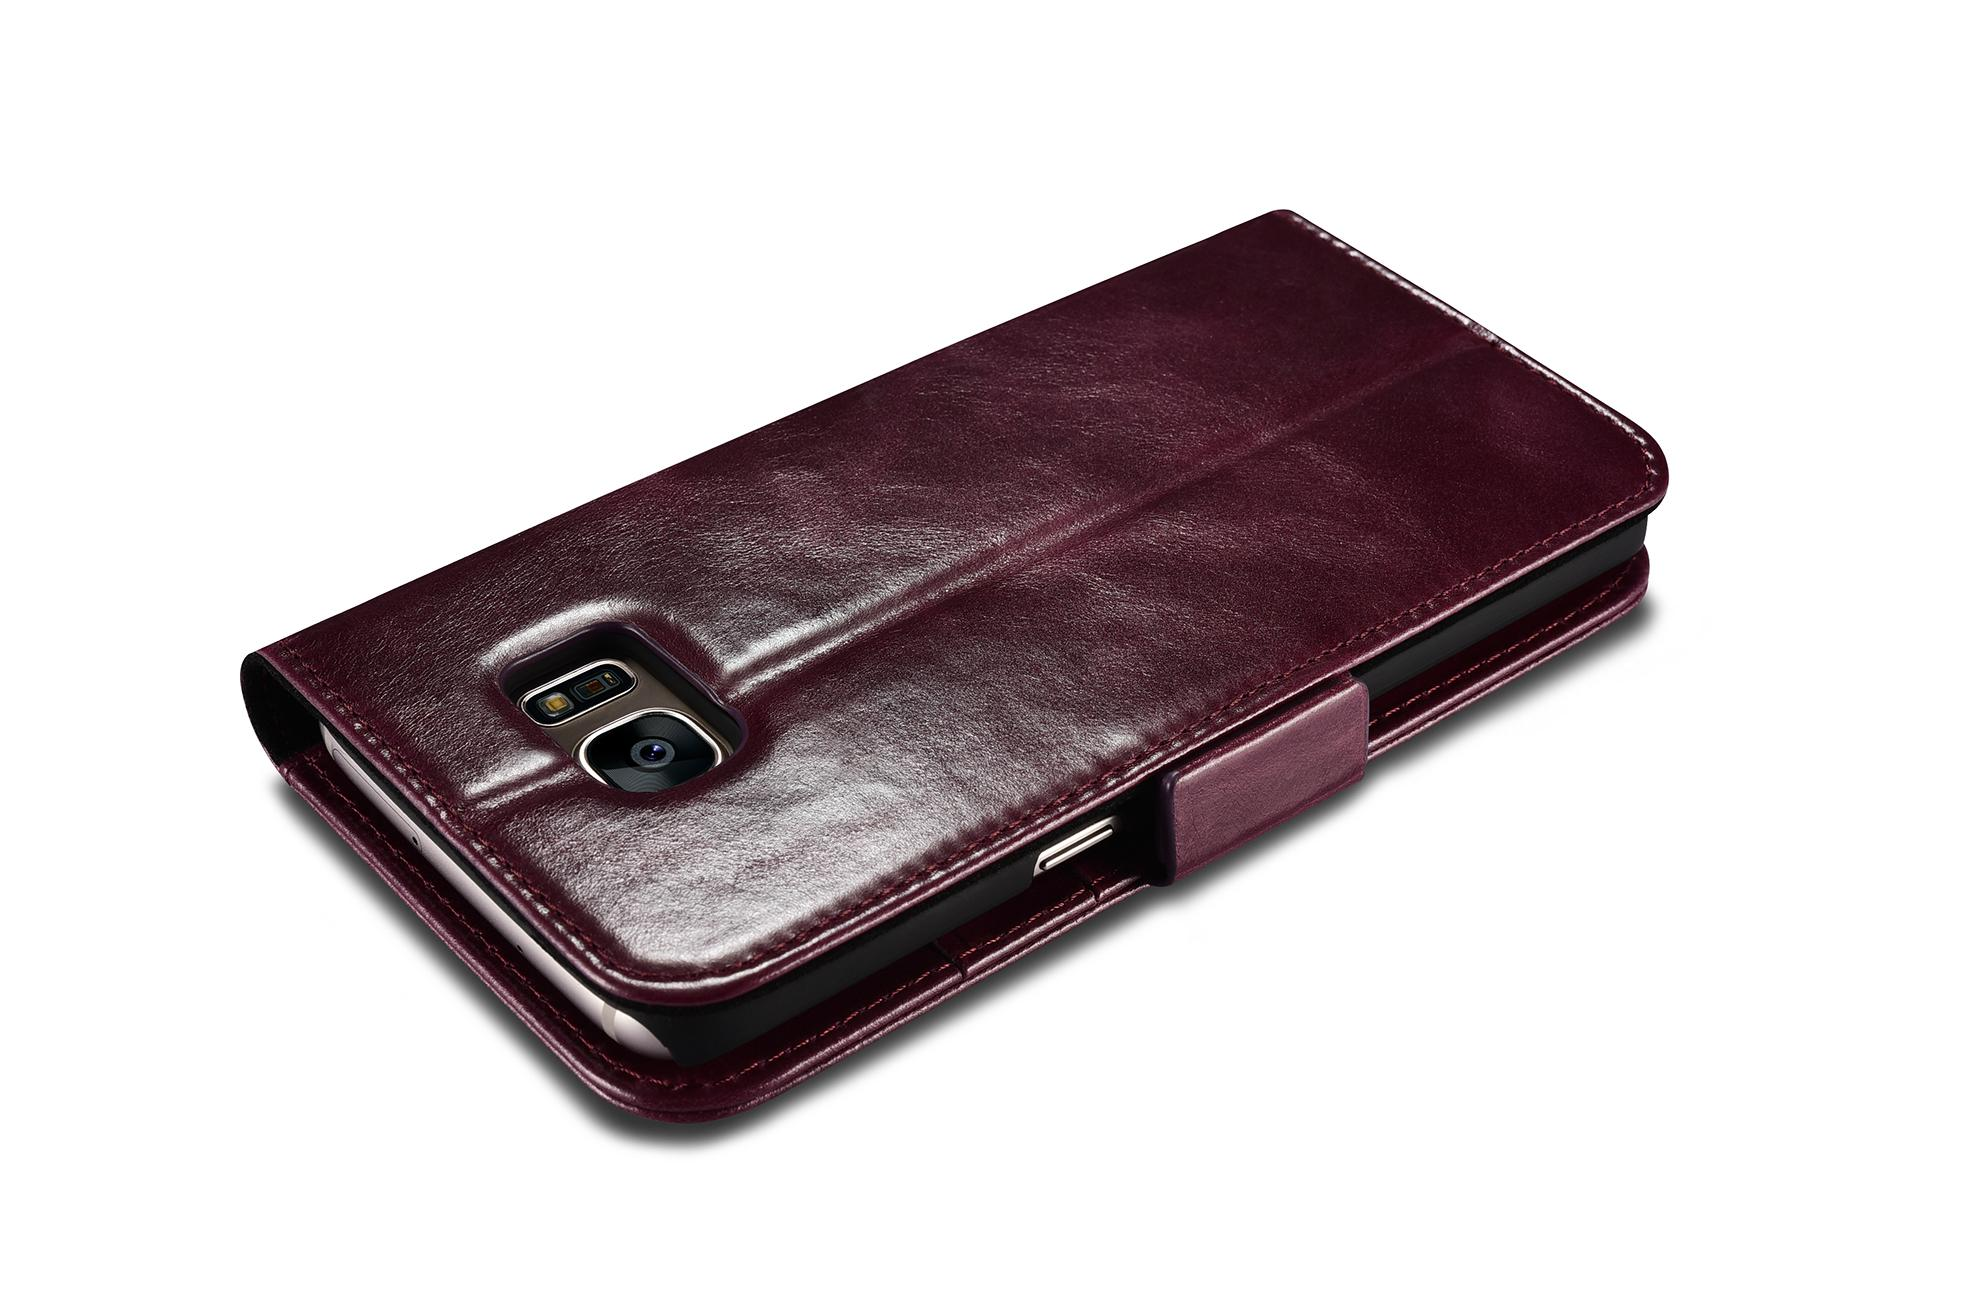 iCarer Samsung Galaxy S7 Edge Leather Detachable 2 in 1 Wallet Folio Case 17